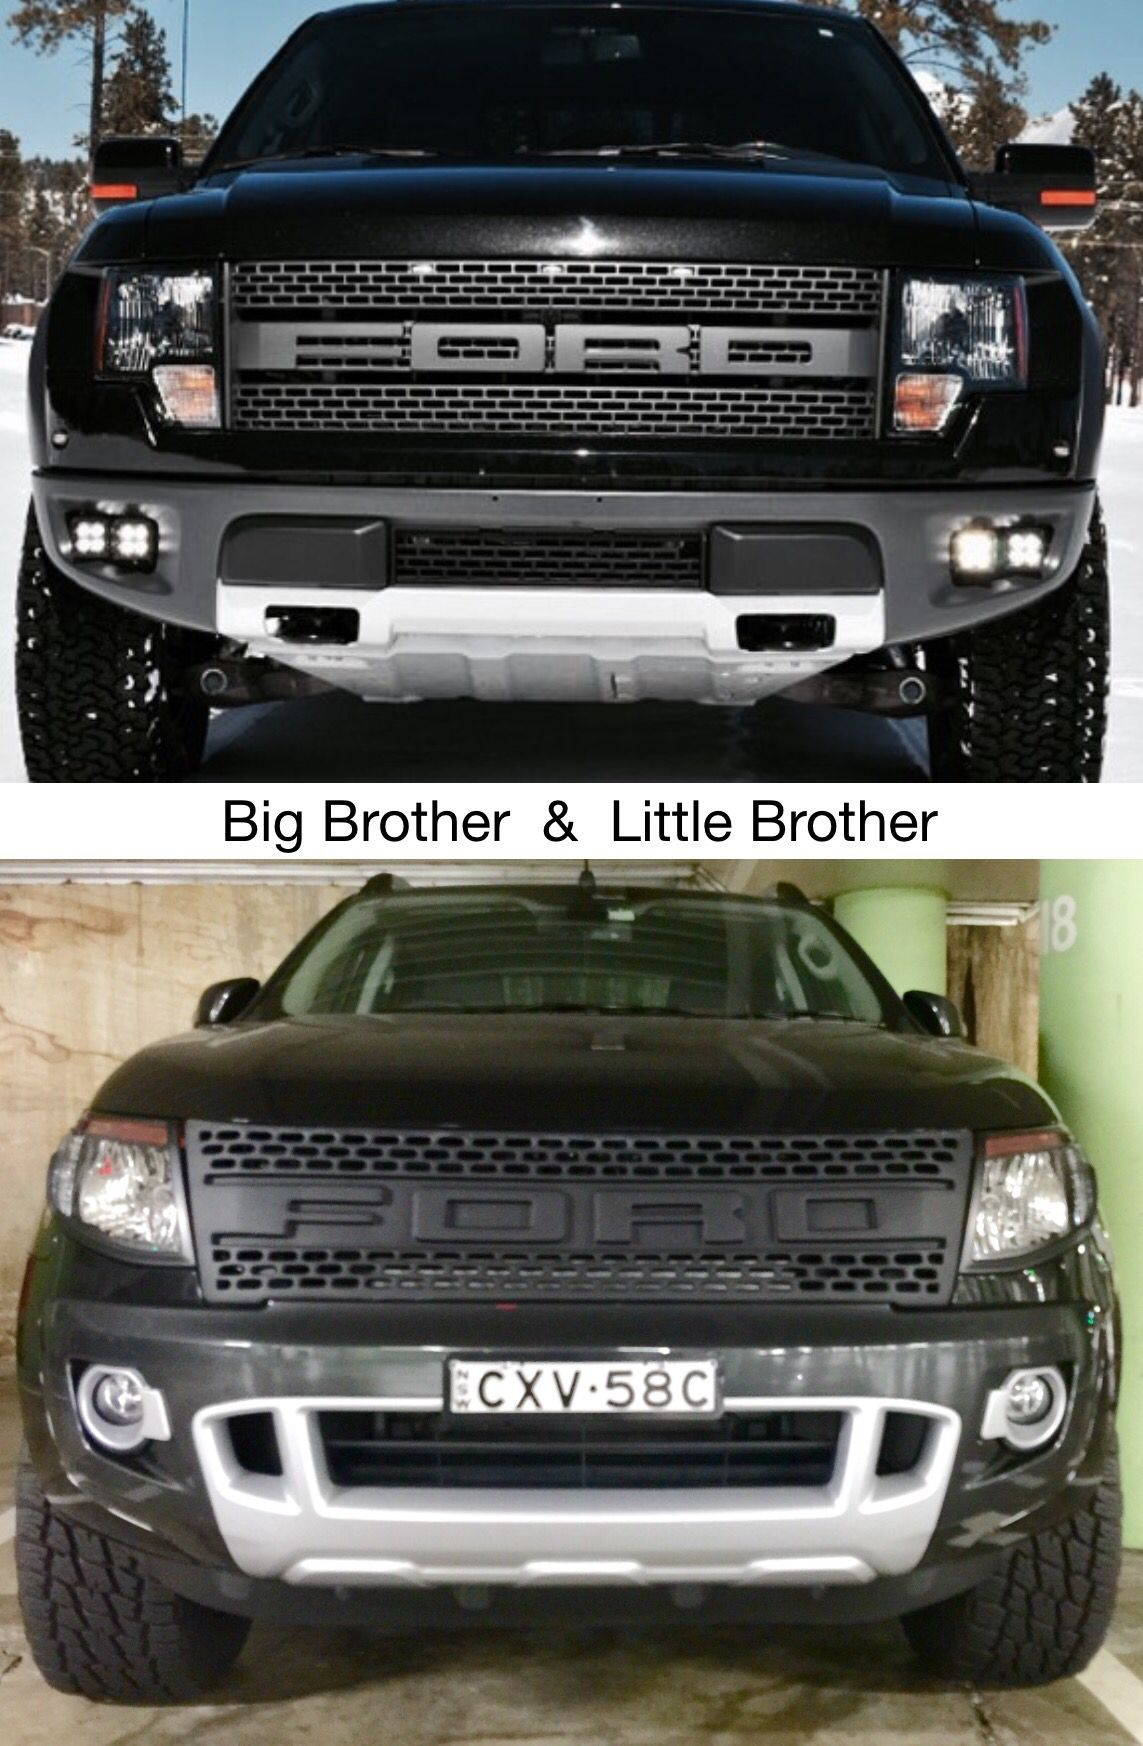 Ford Raptor Vs Ford Ranger